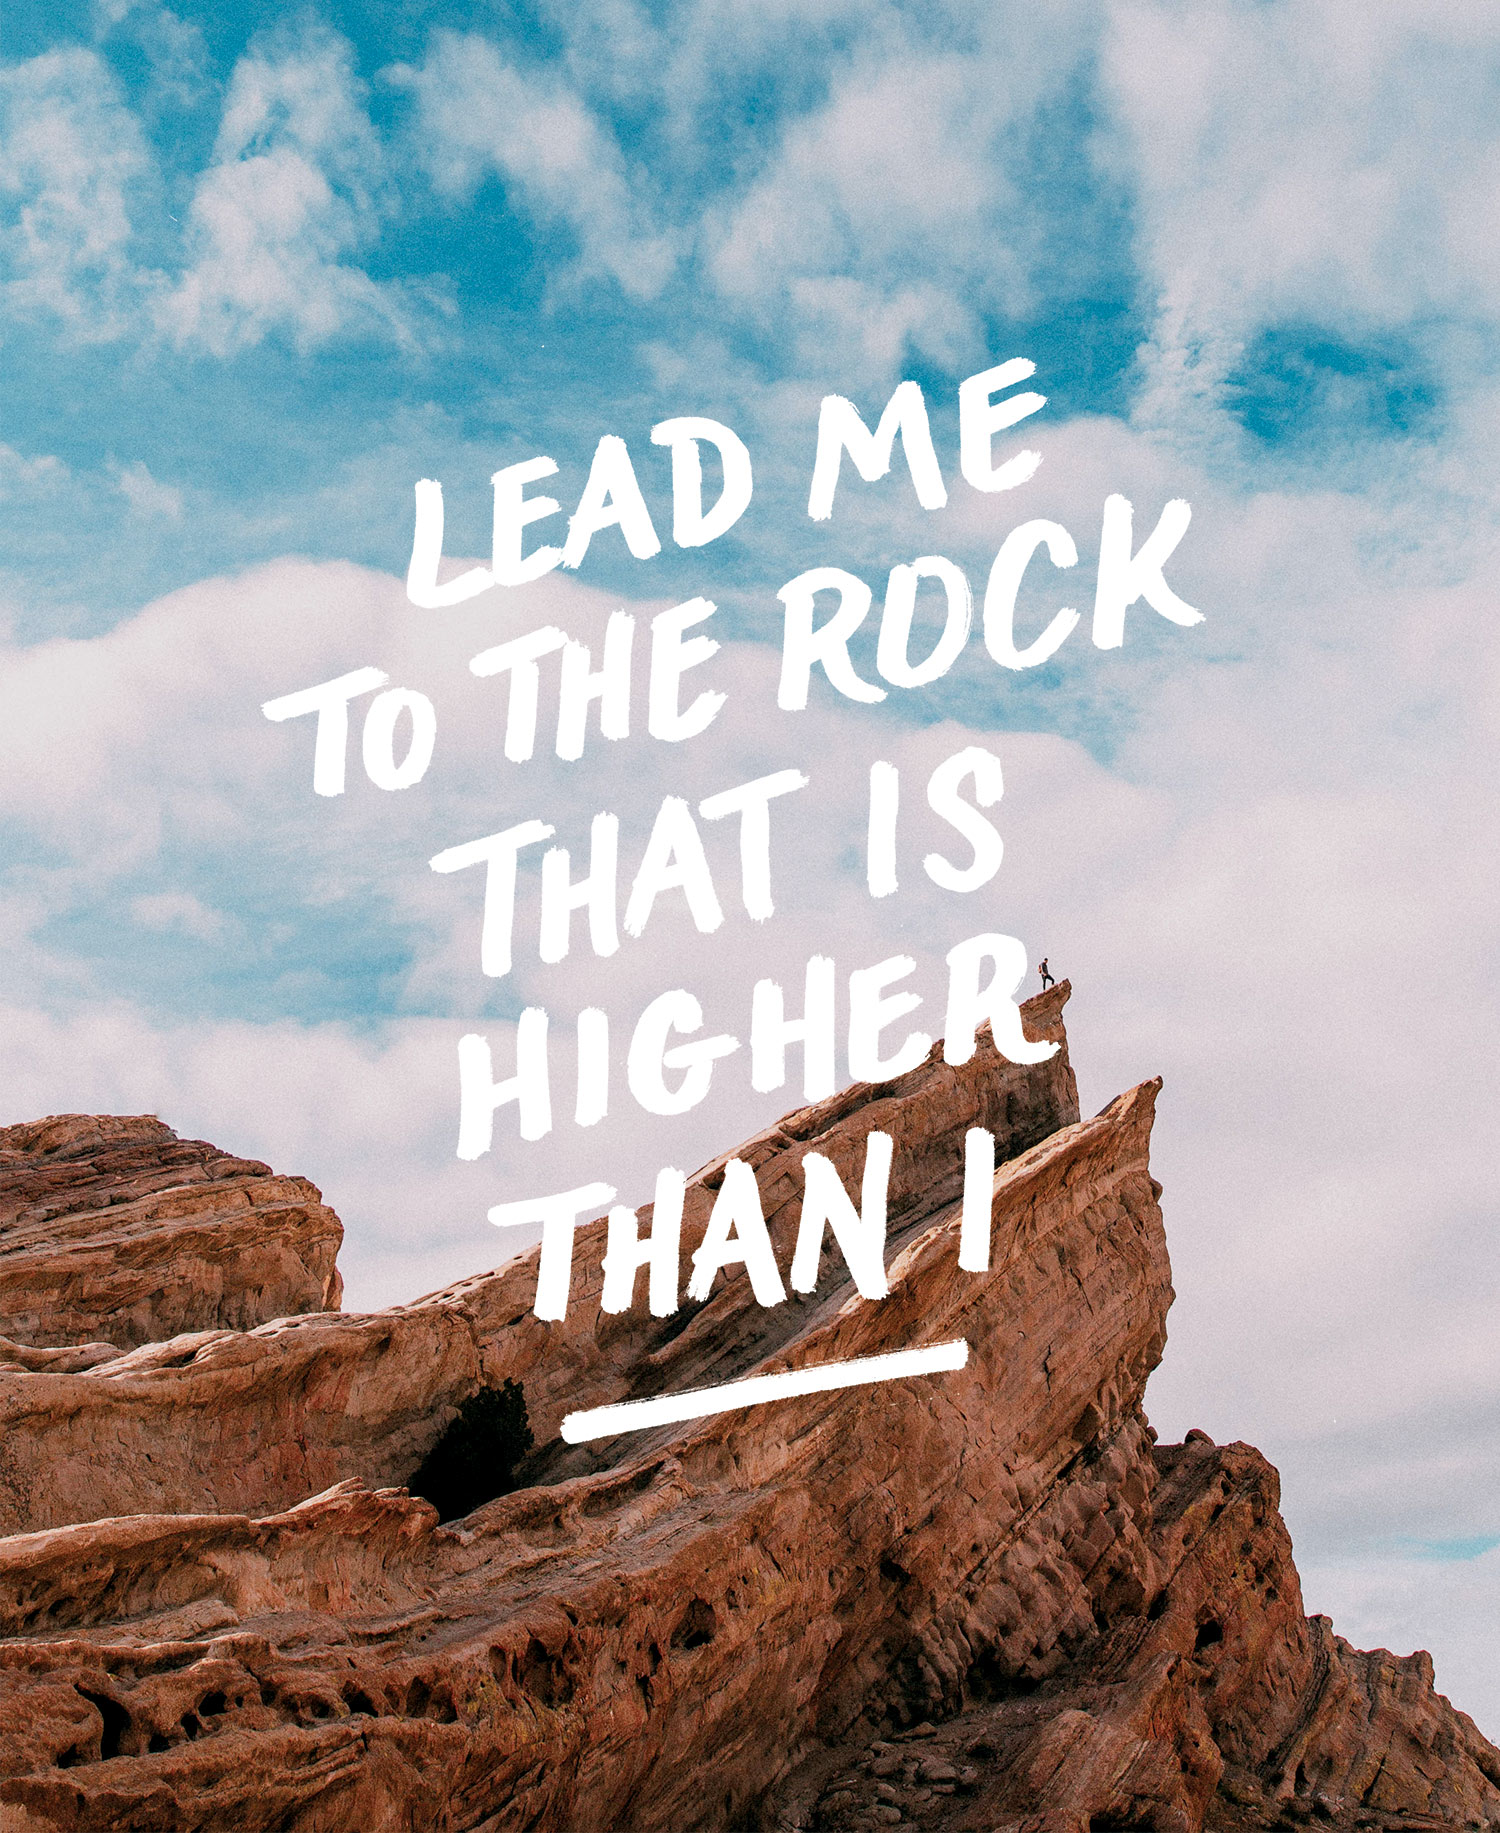 Lead me to the rock that is higher than I